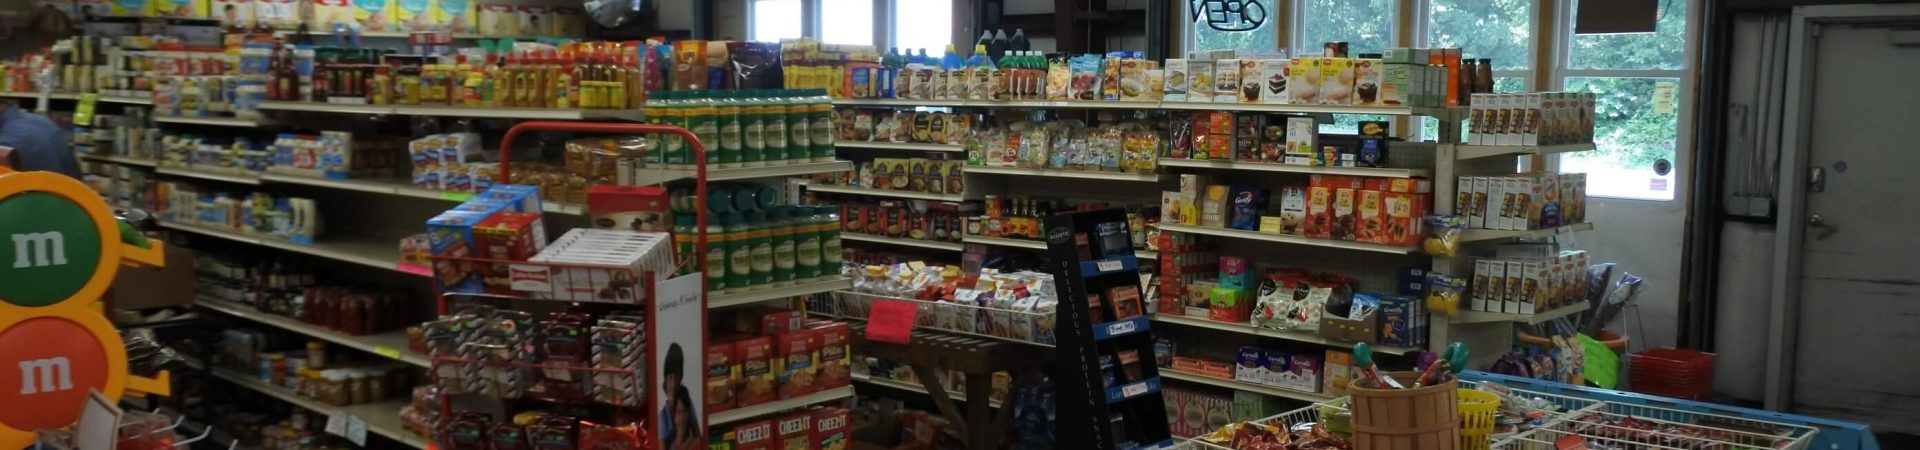 Asheville Discount Groceries